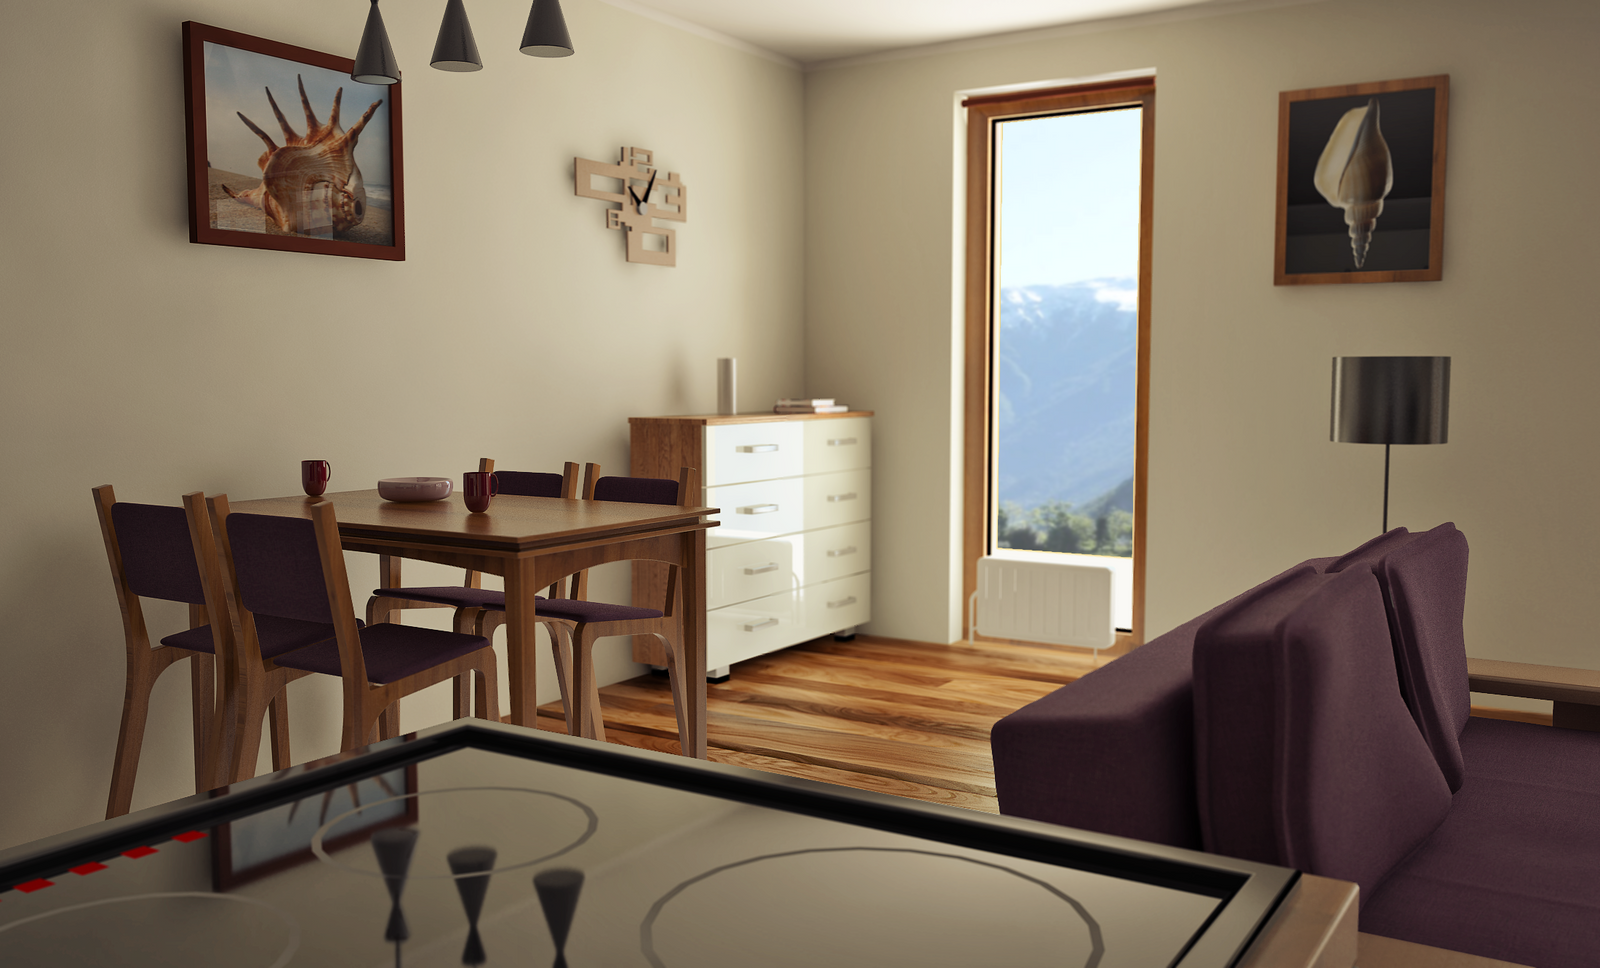 ... Dining Room Sketchup Pro Vray Artisan By Brent The Claw